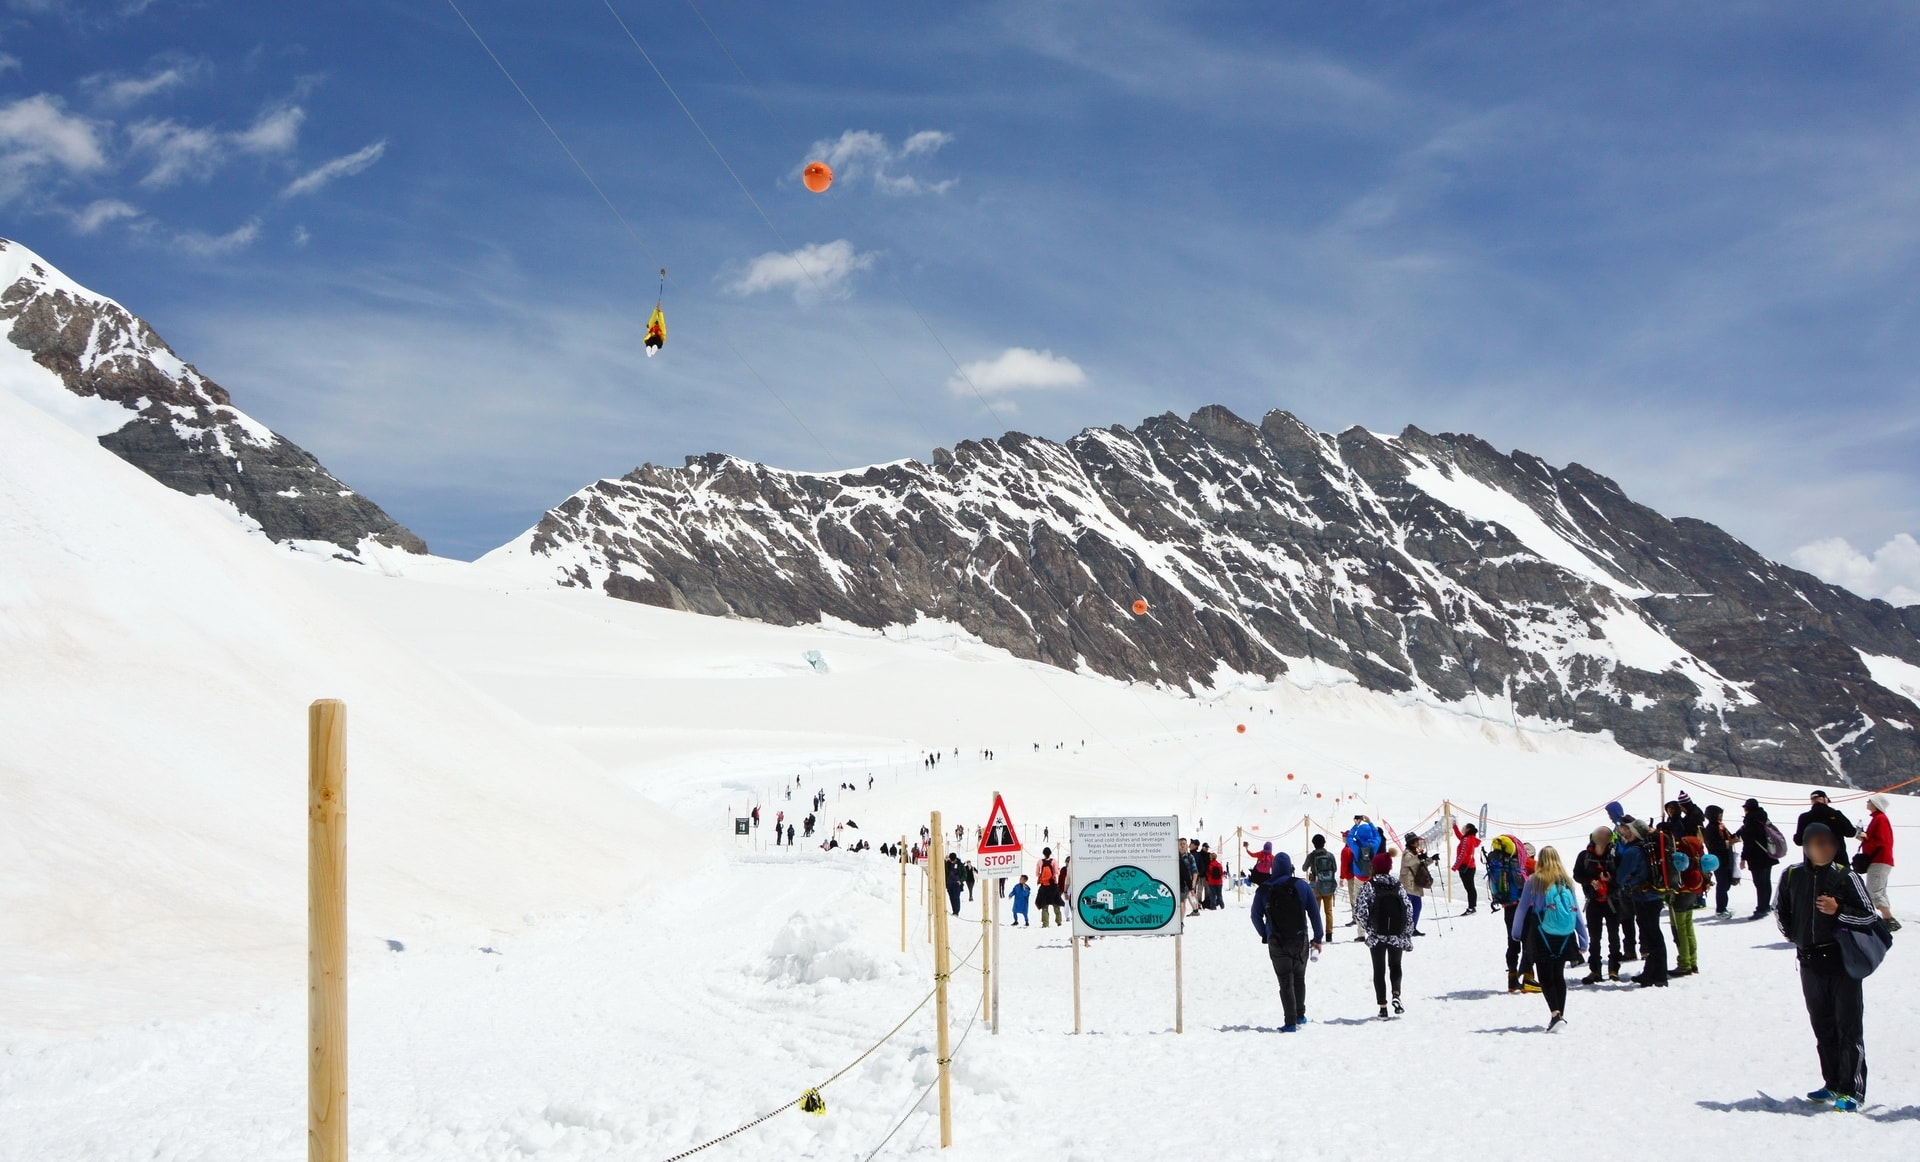 Jungfraujoch also offers a Snow Fun Park or a zipline